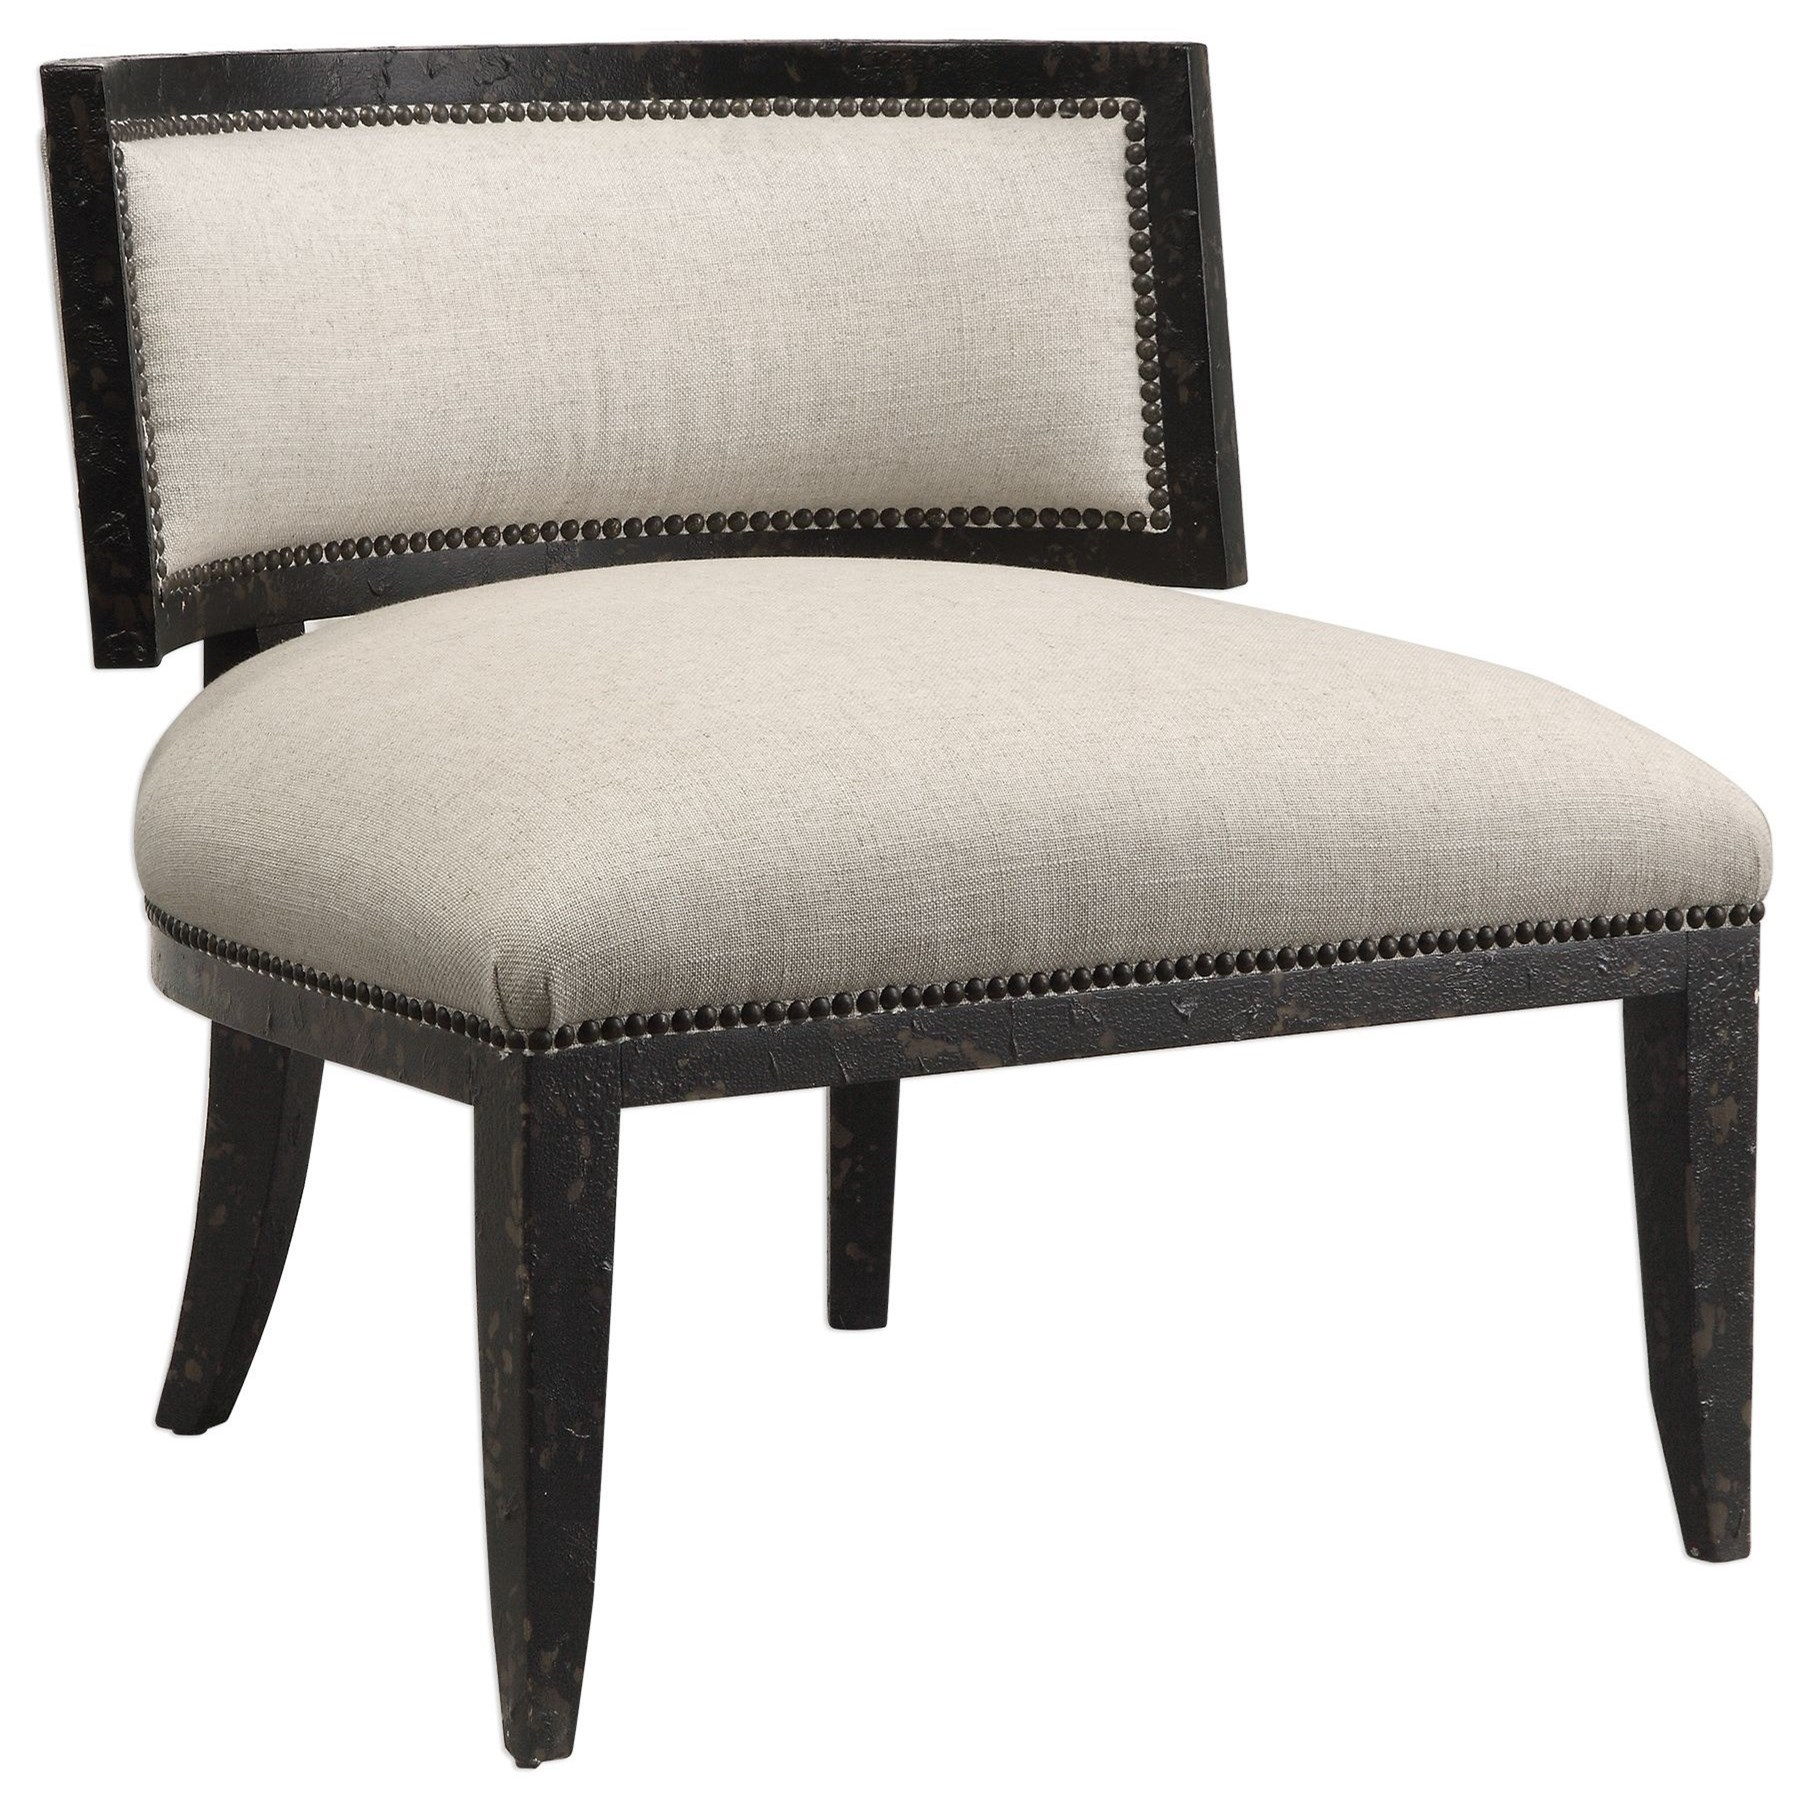 Uttermost Accent Furniture Chairs Somer Oatmeal Chair